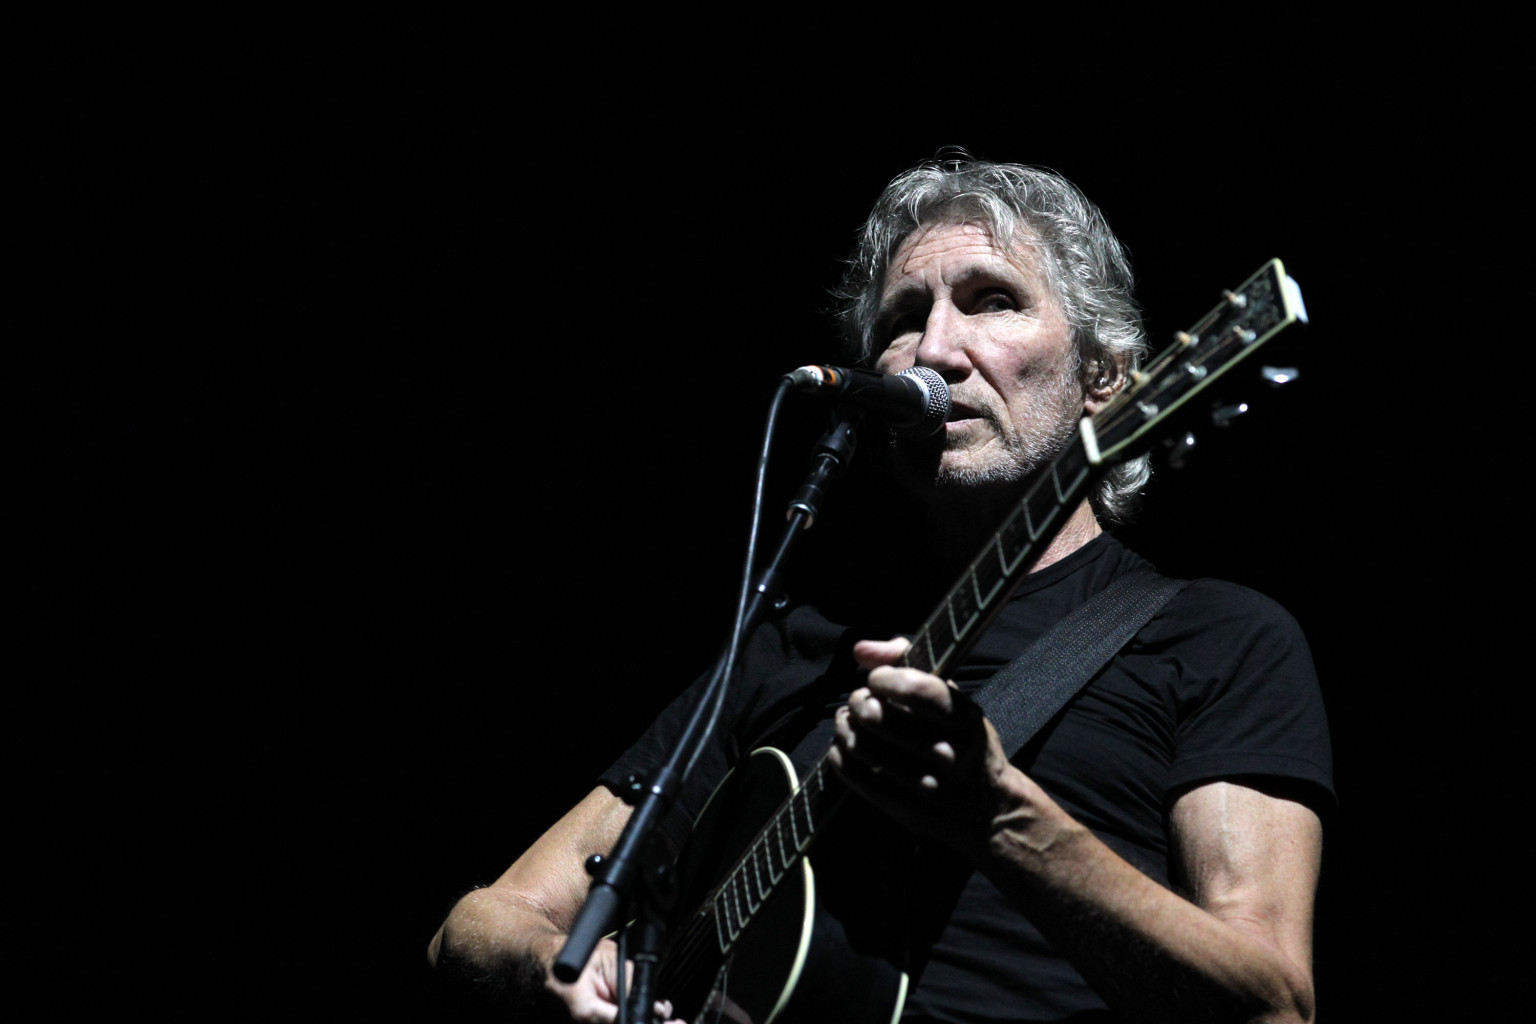 Roger Waters Performs At The GelreDome, Amsterdam